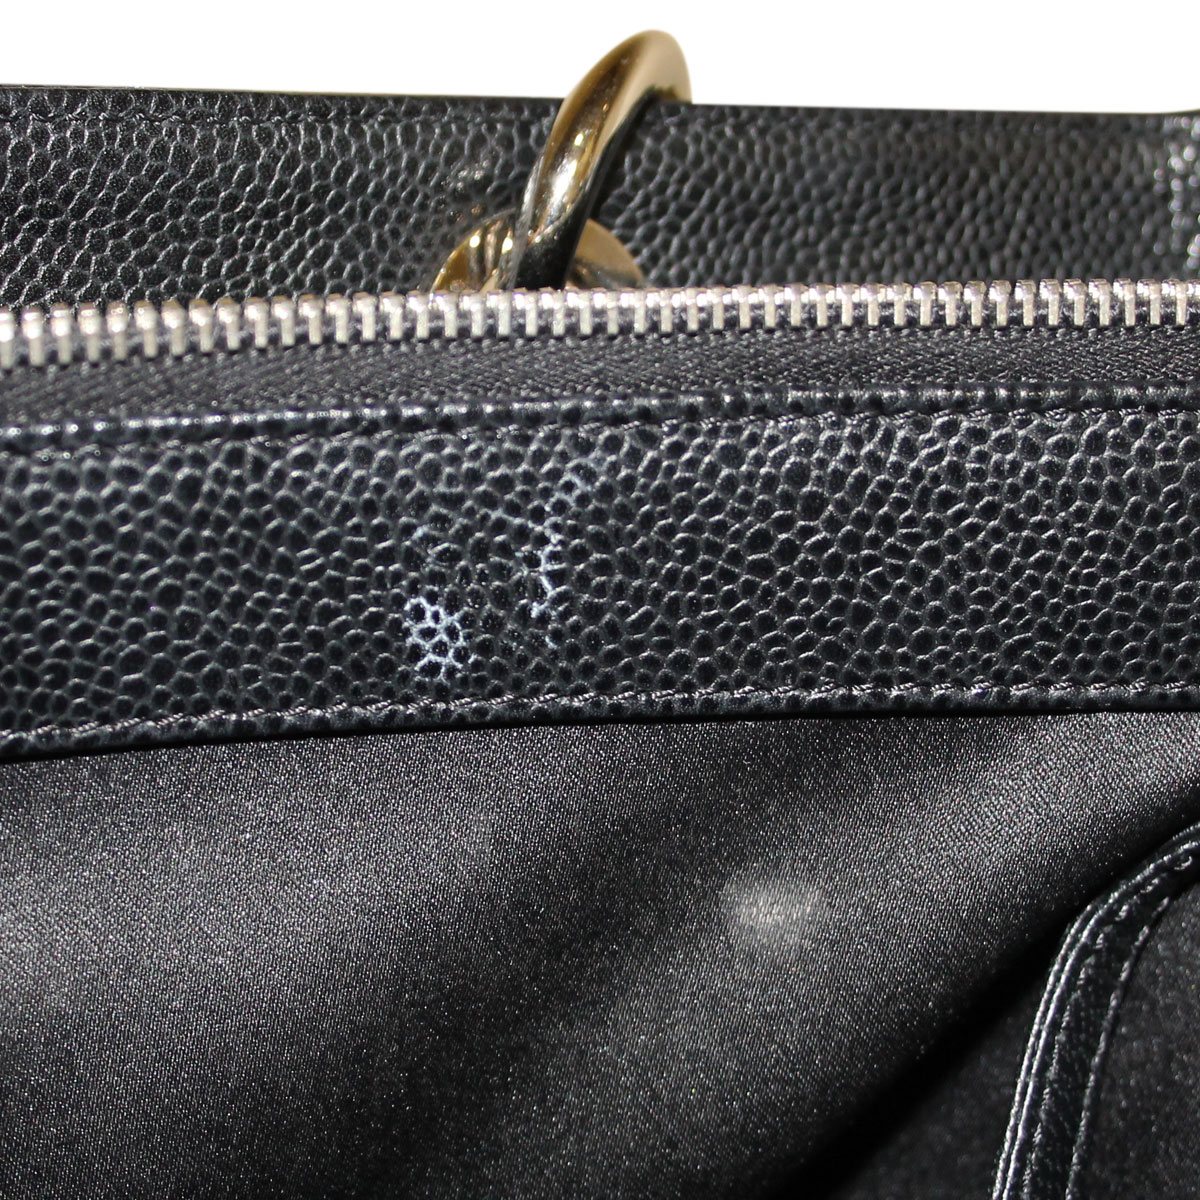 how to clean black spots on leather